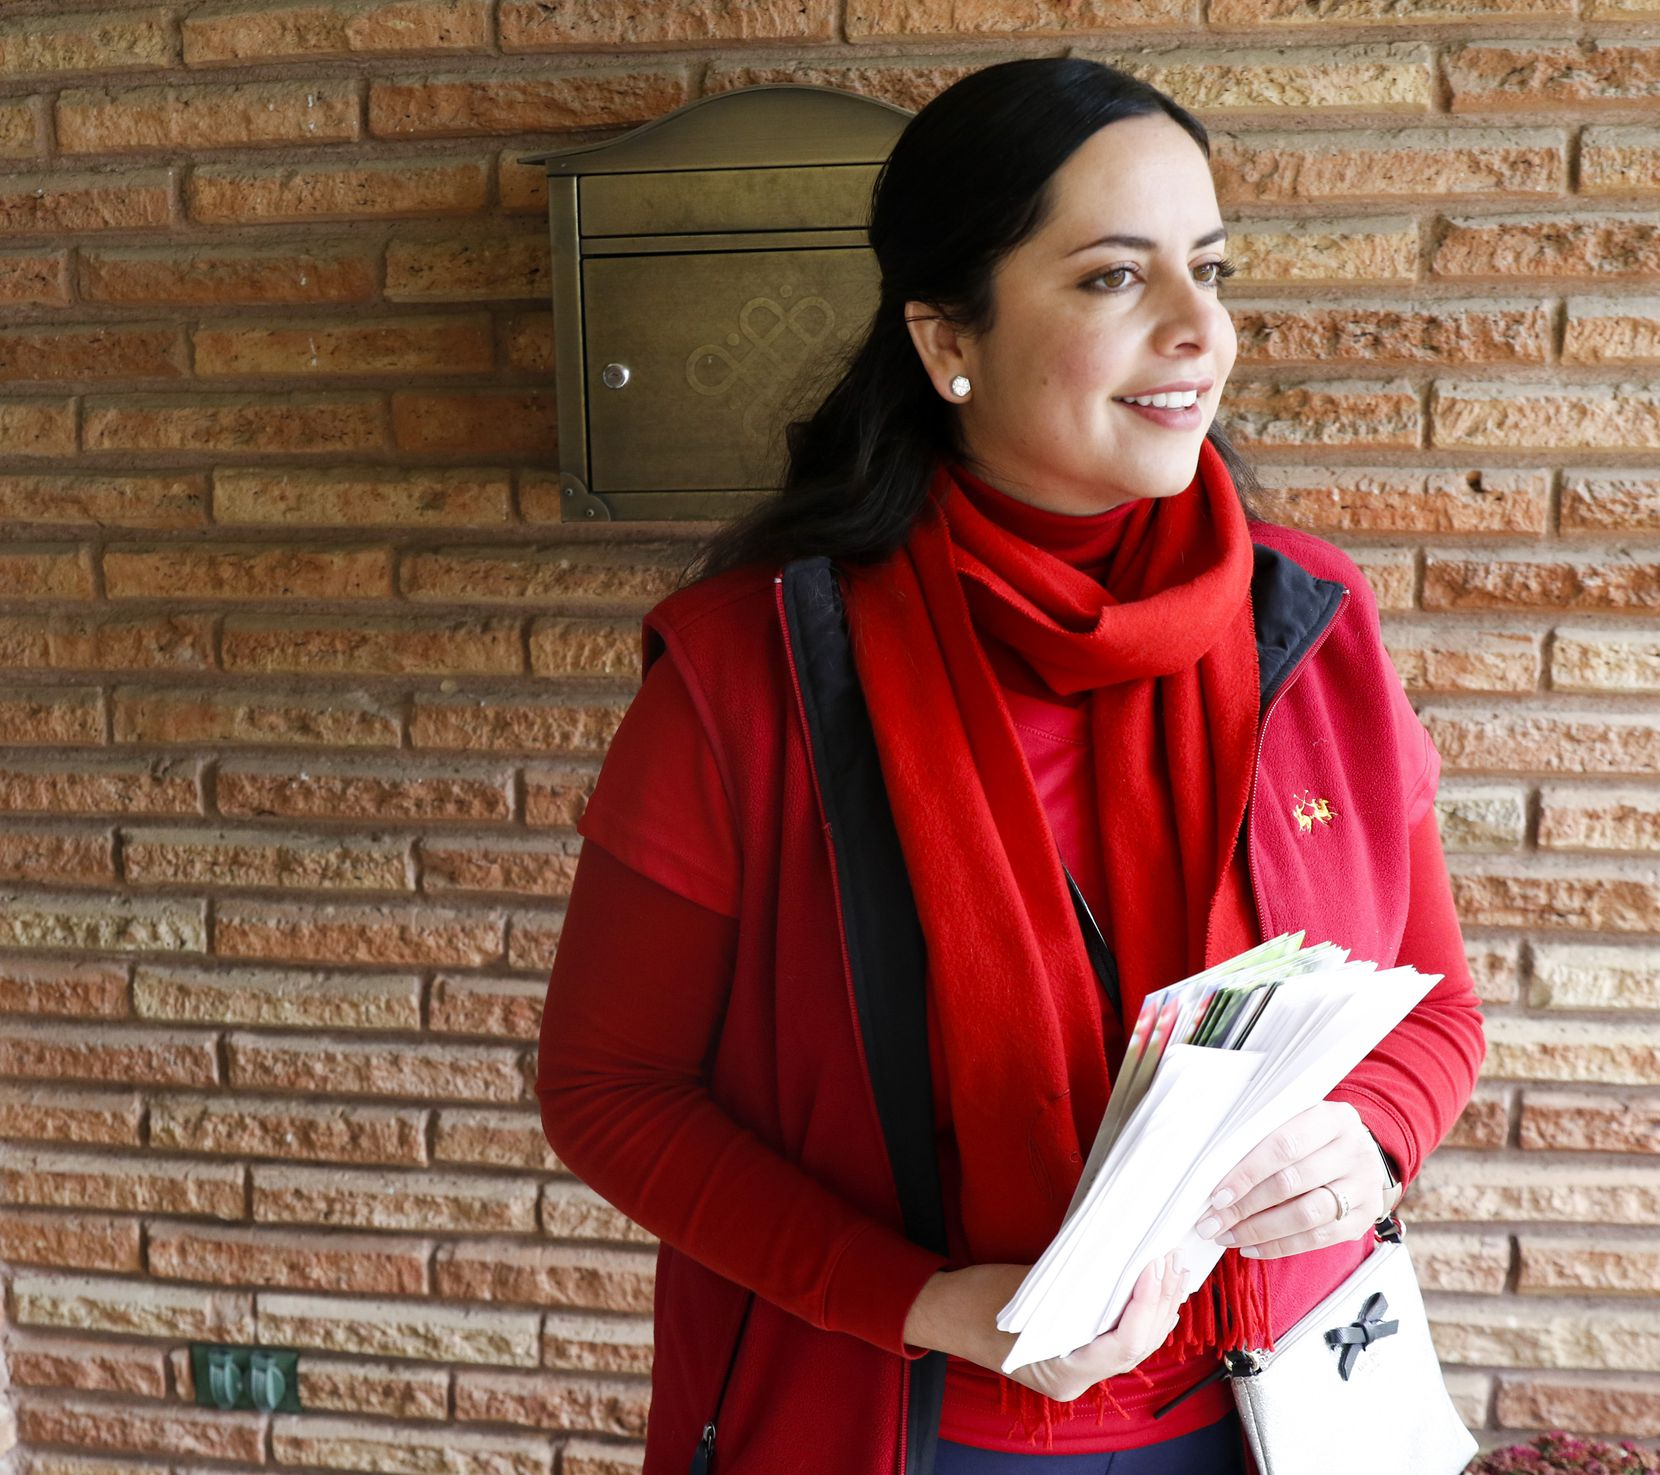 Luisa Del Rosal smiles after having a conversation with a supporter as she block walks in Texas House District 114 in Dallas, Texas on Saturday, November 23, 2019. Luisa Del Rosal is among the Republican candidates looking to take back House districts that Democrats flipped in 2018 (Benjamin M. Robinson/The Dallas Morning News)